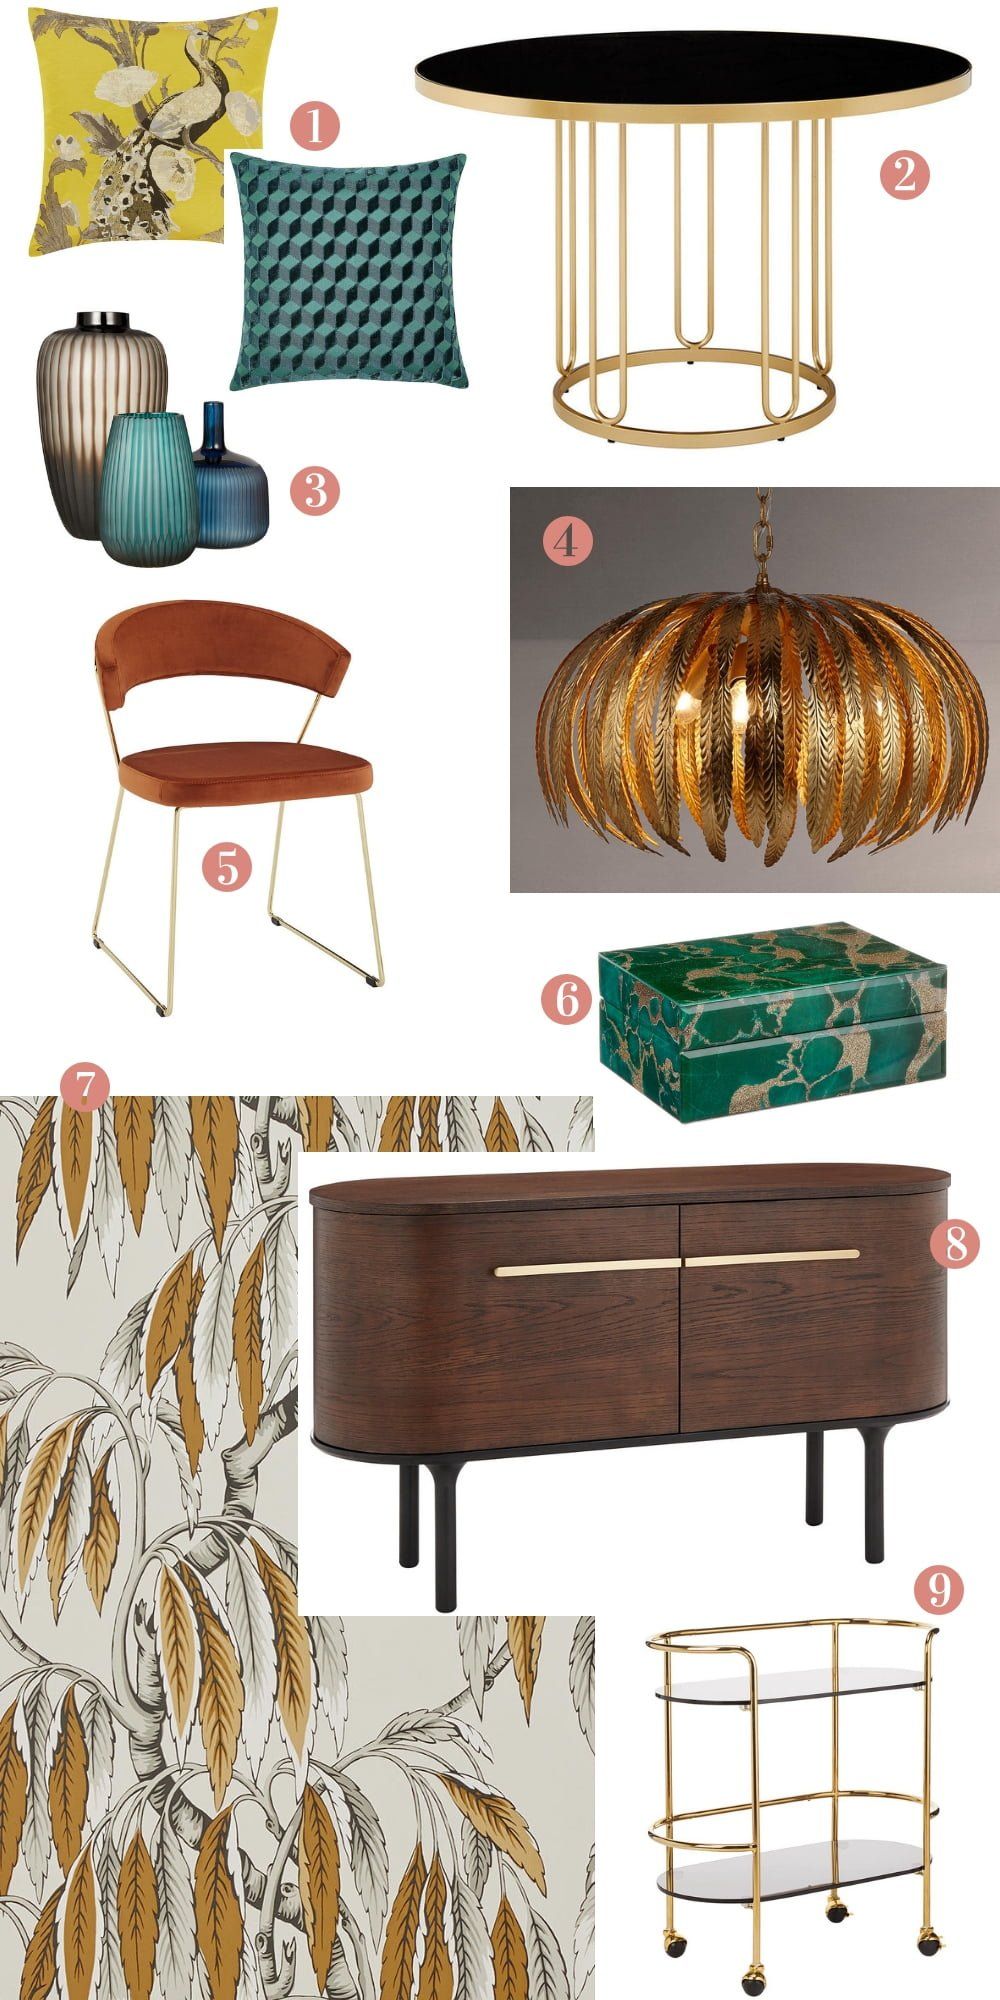 Palazzo Collection by John Lewis & Partners - contemporary eclectic luxury for your home